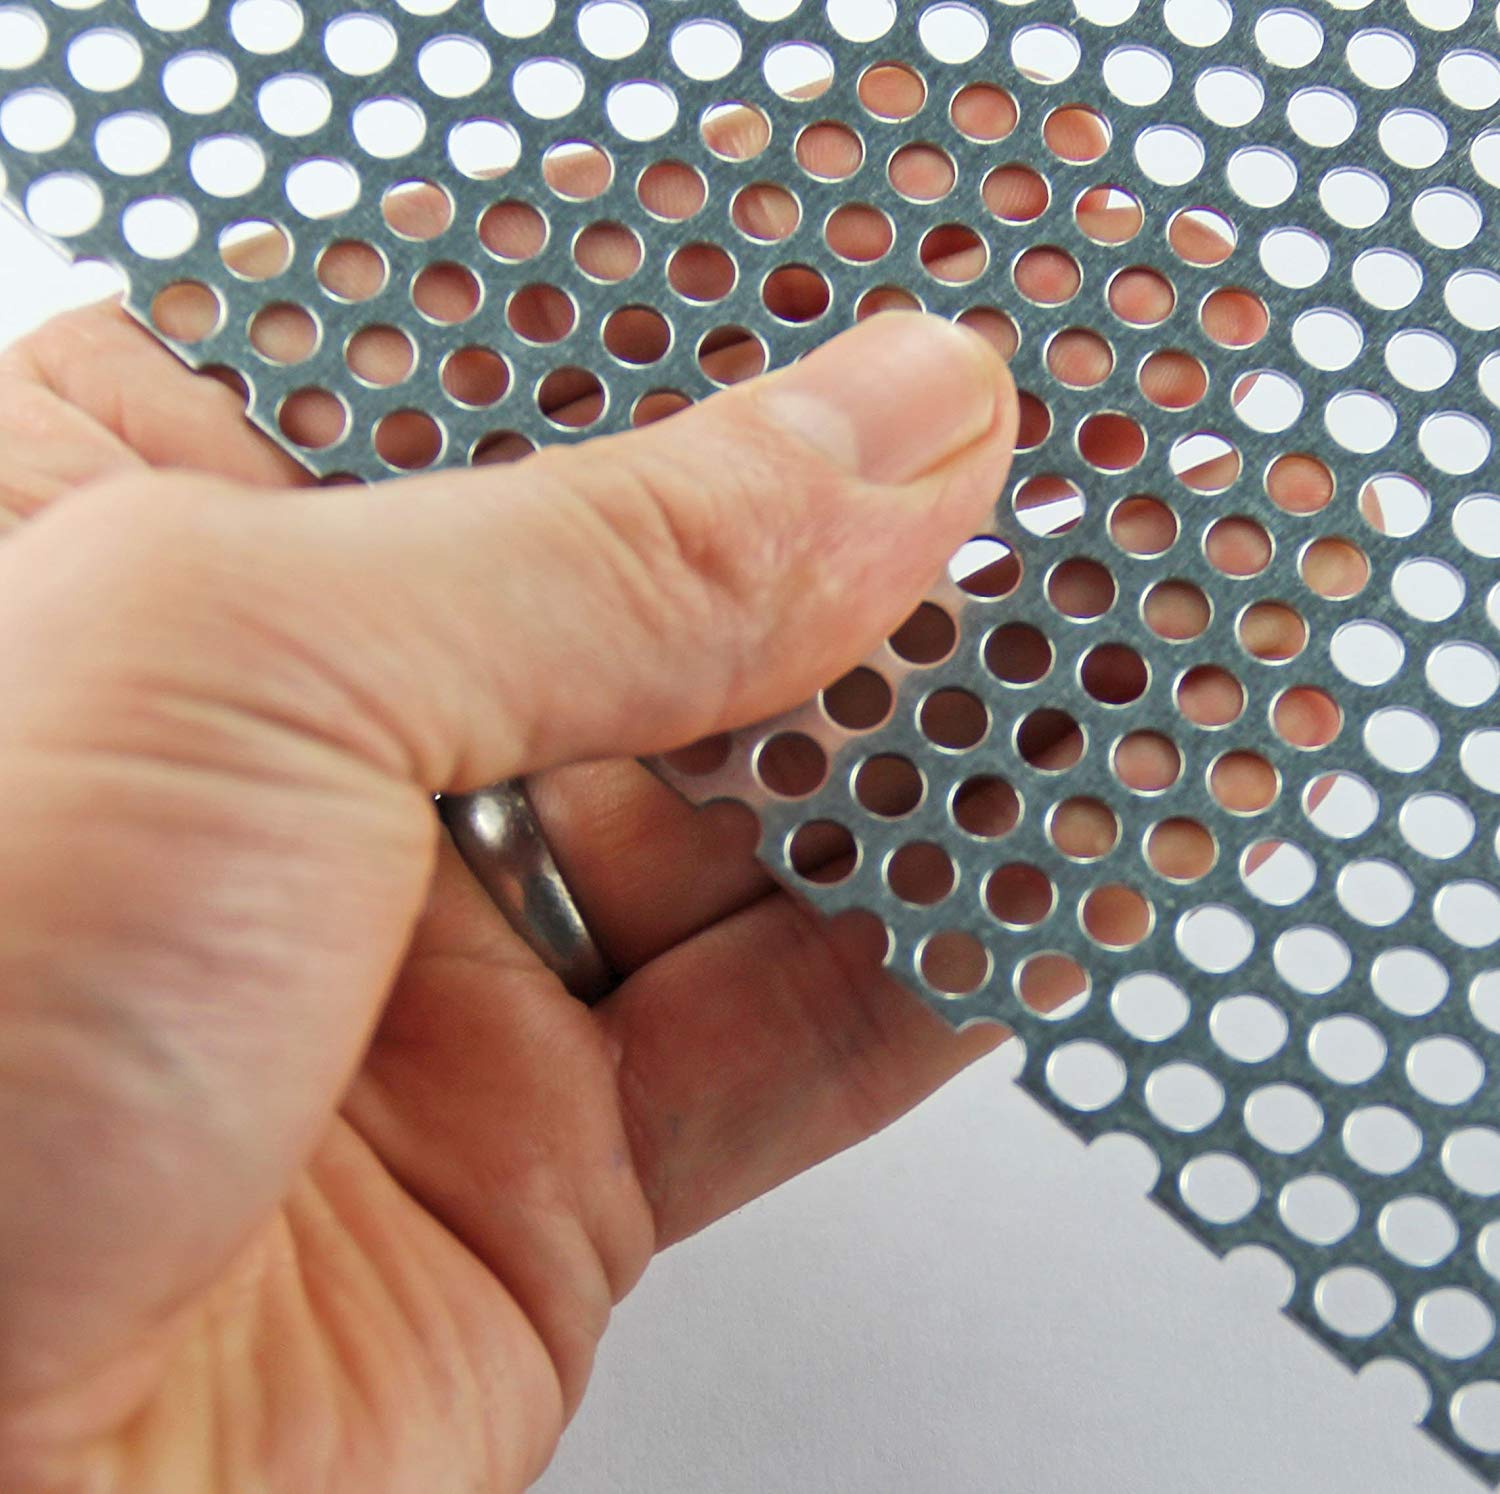 5mm Mild Steel Perforated Sheet (5mm Hole x 8mm Pitch x 1mm Thick) - A3 x 3 The Mesh Company